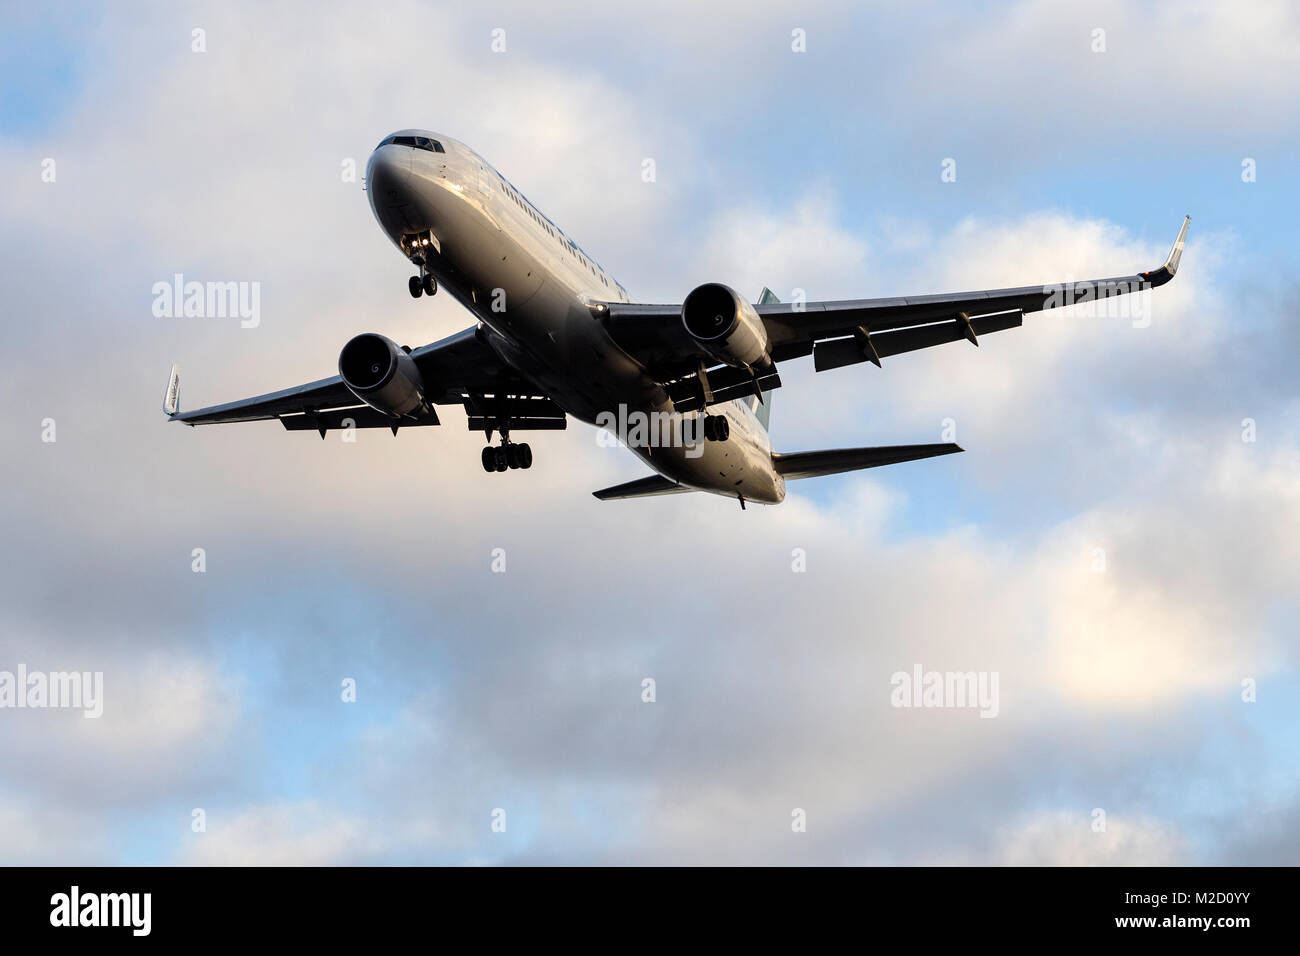 A WestJet Airlines Boeing 767-300ER aircraft on final approach to London Gatwick airport on a January morning - Stock Image